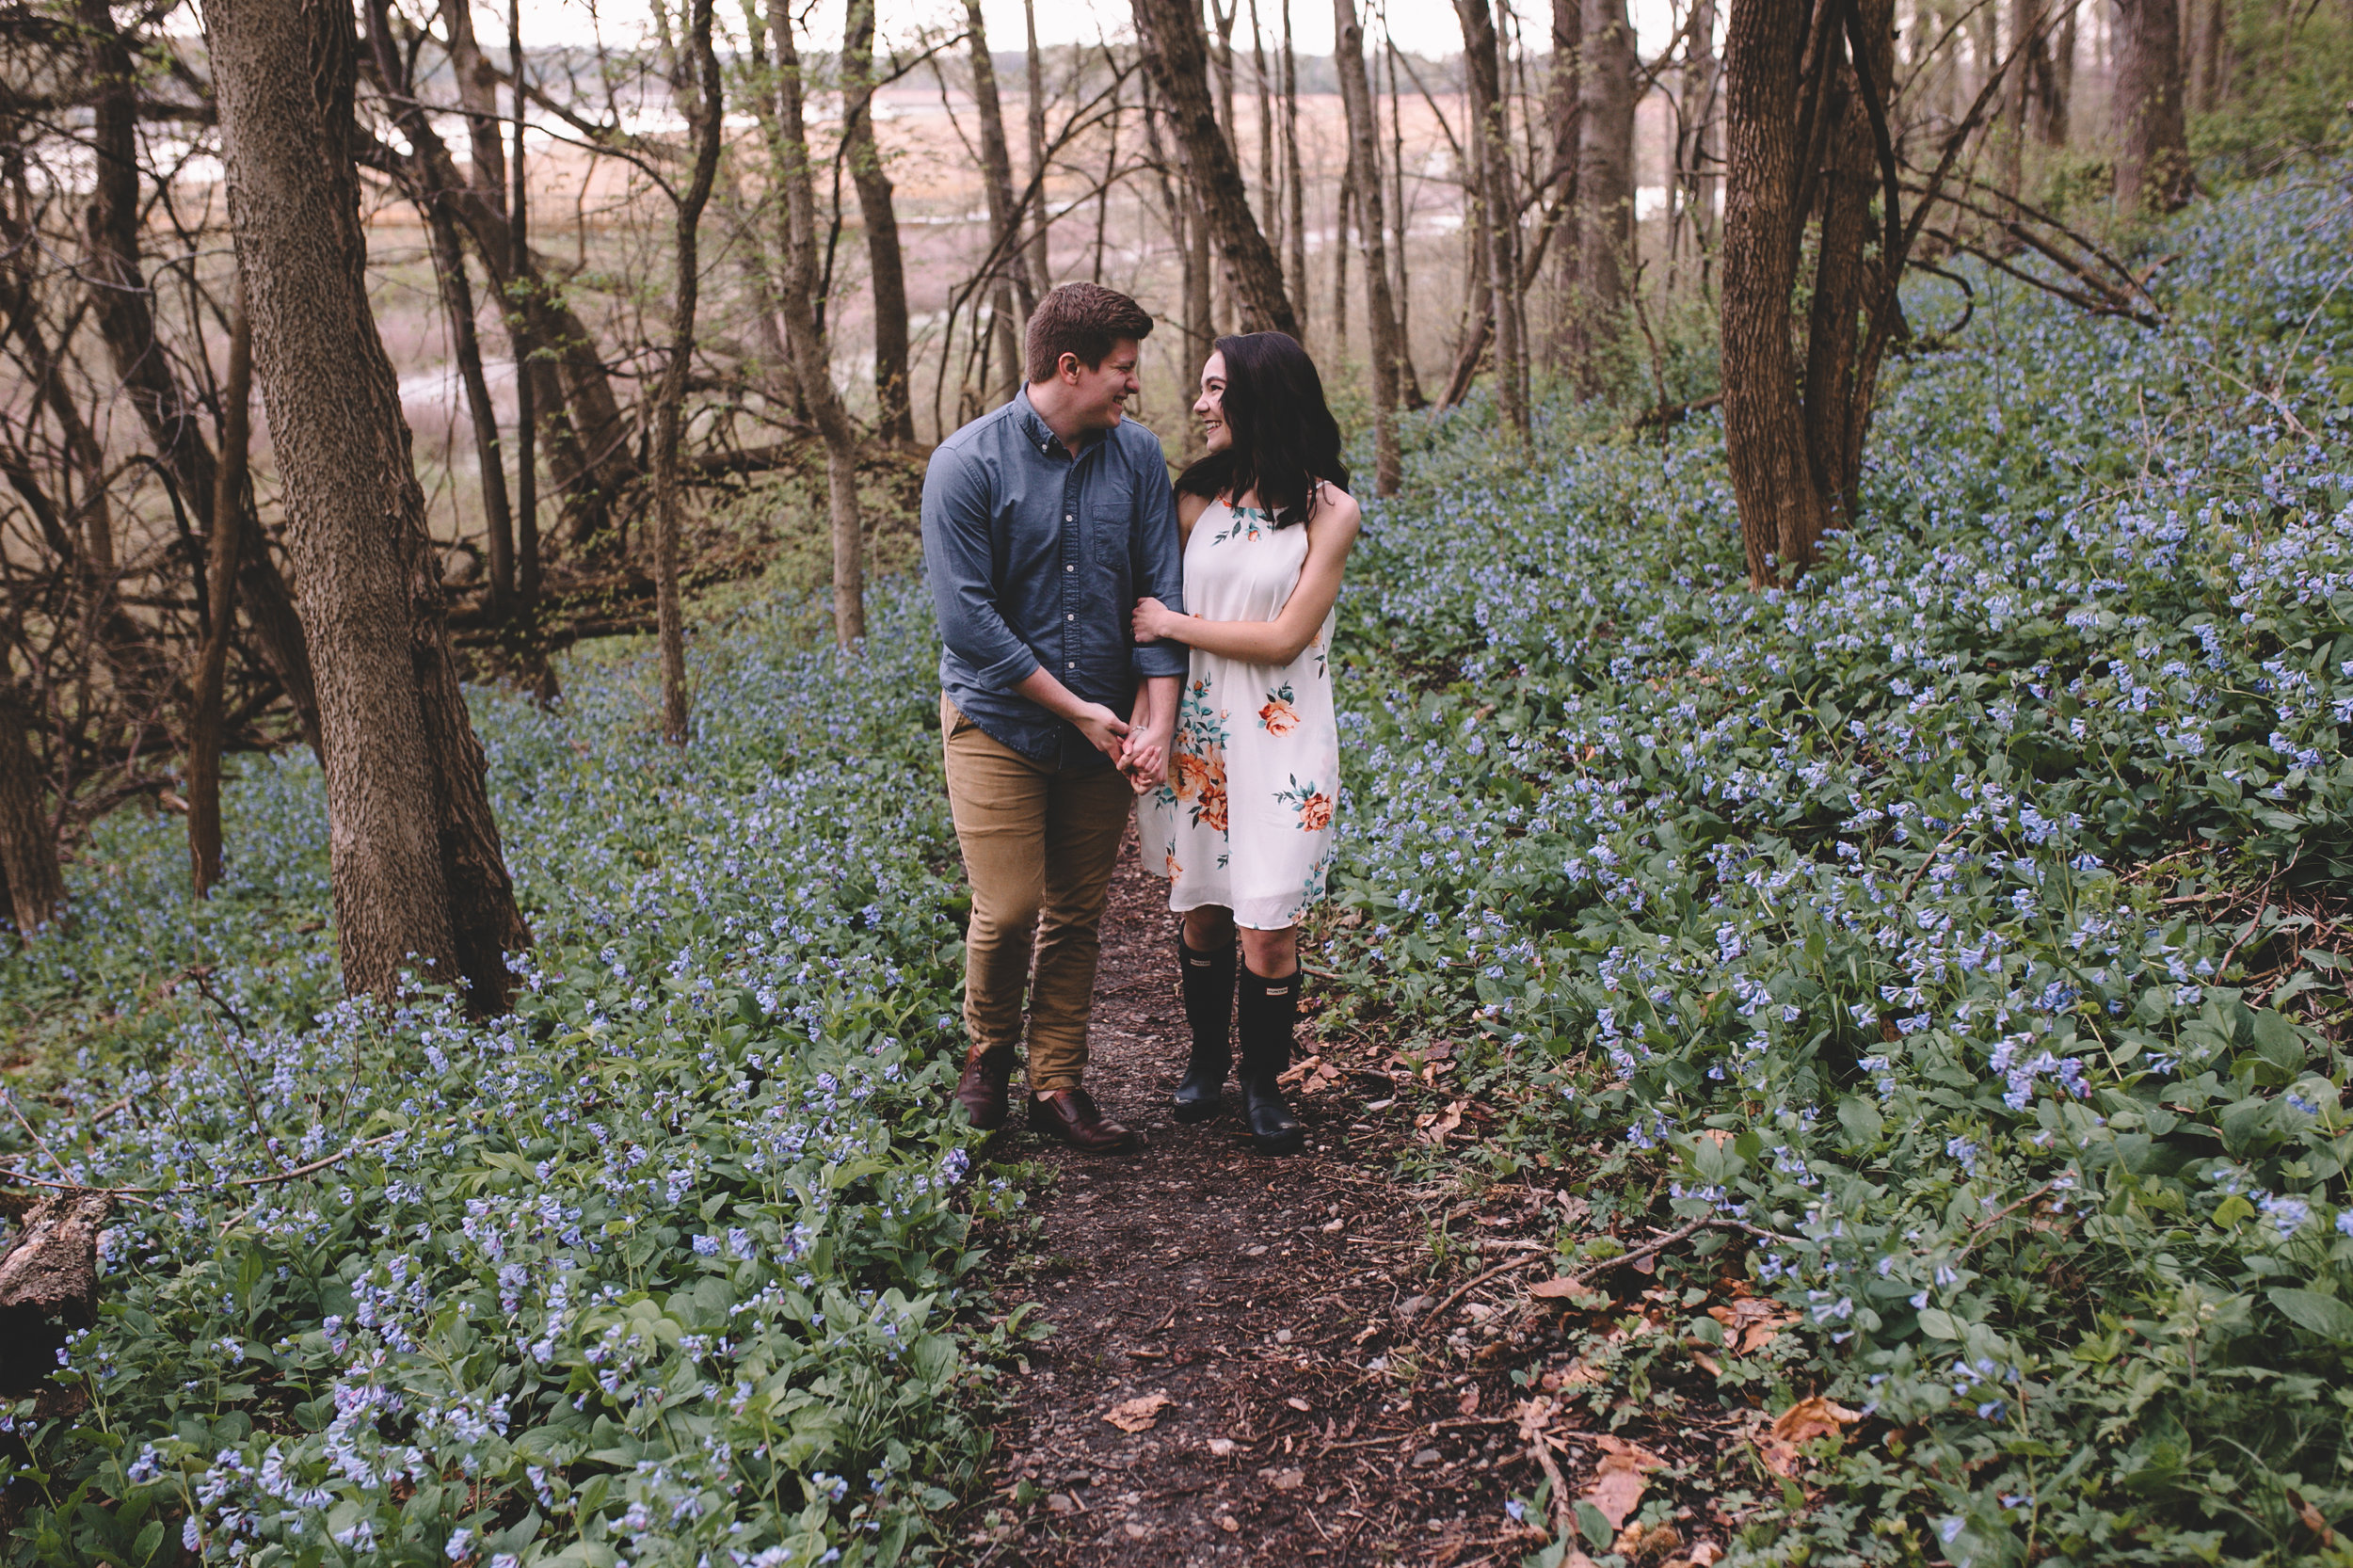 Will + Erin Engagement Photos at Prophetstown State Park  (108 of 183).jpg